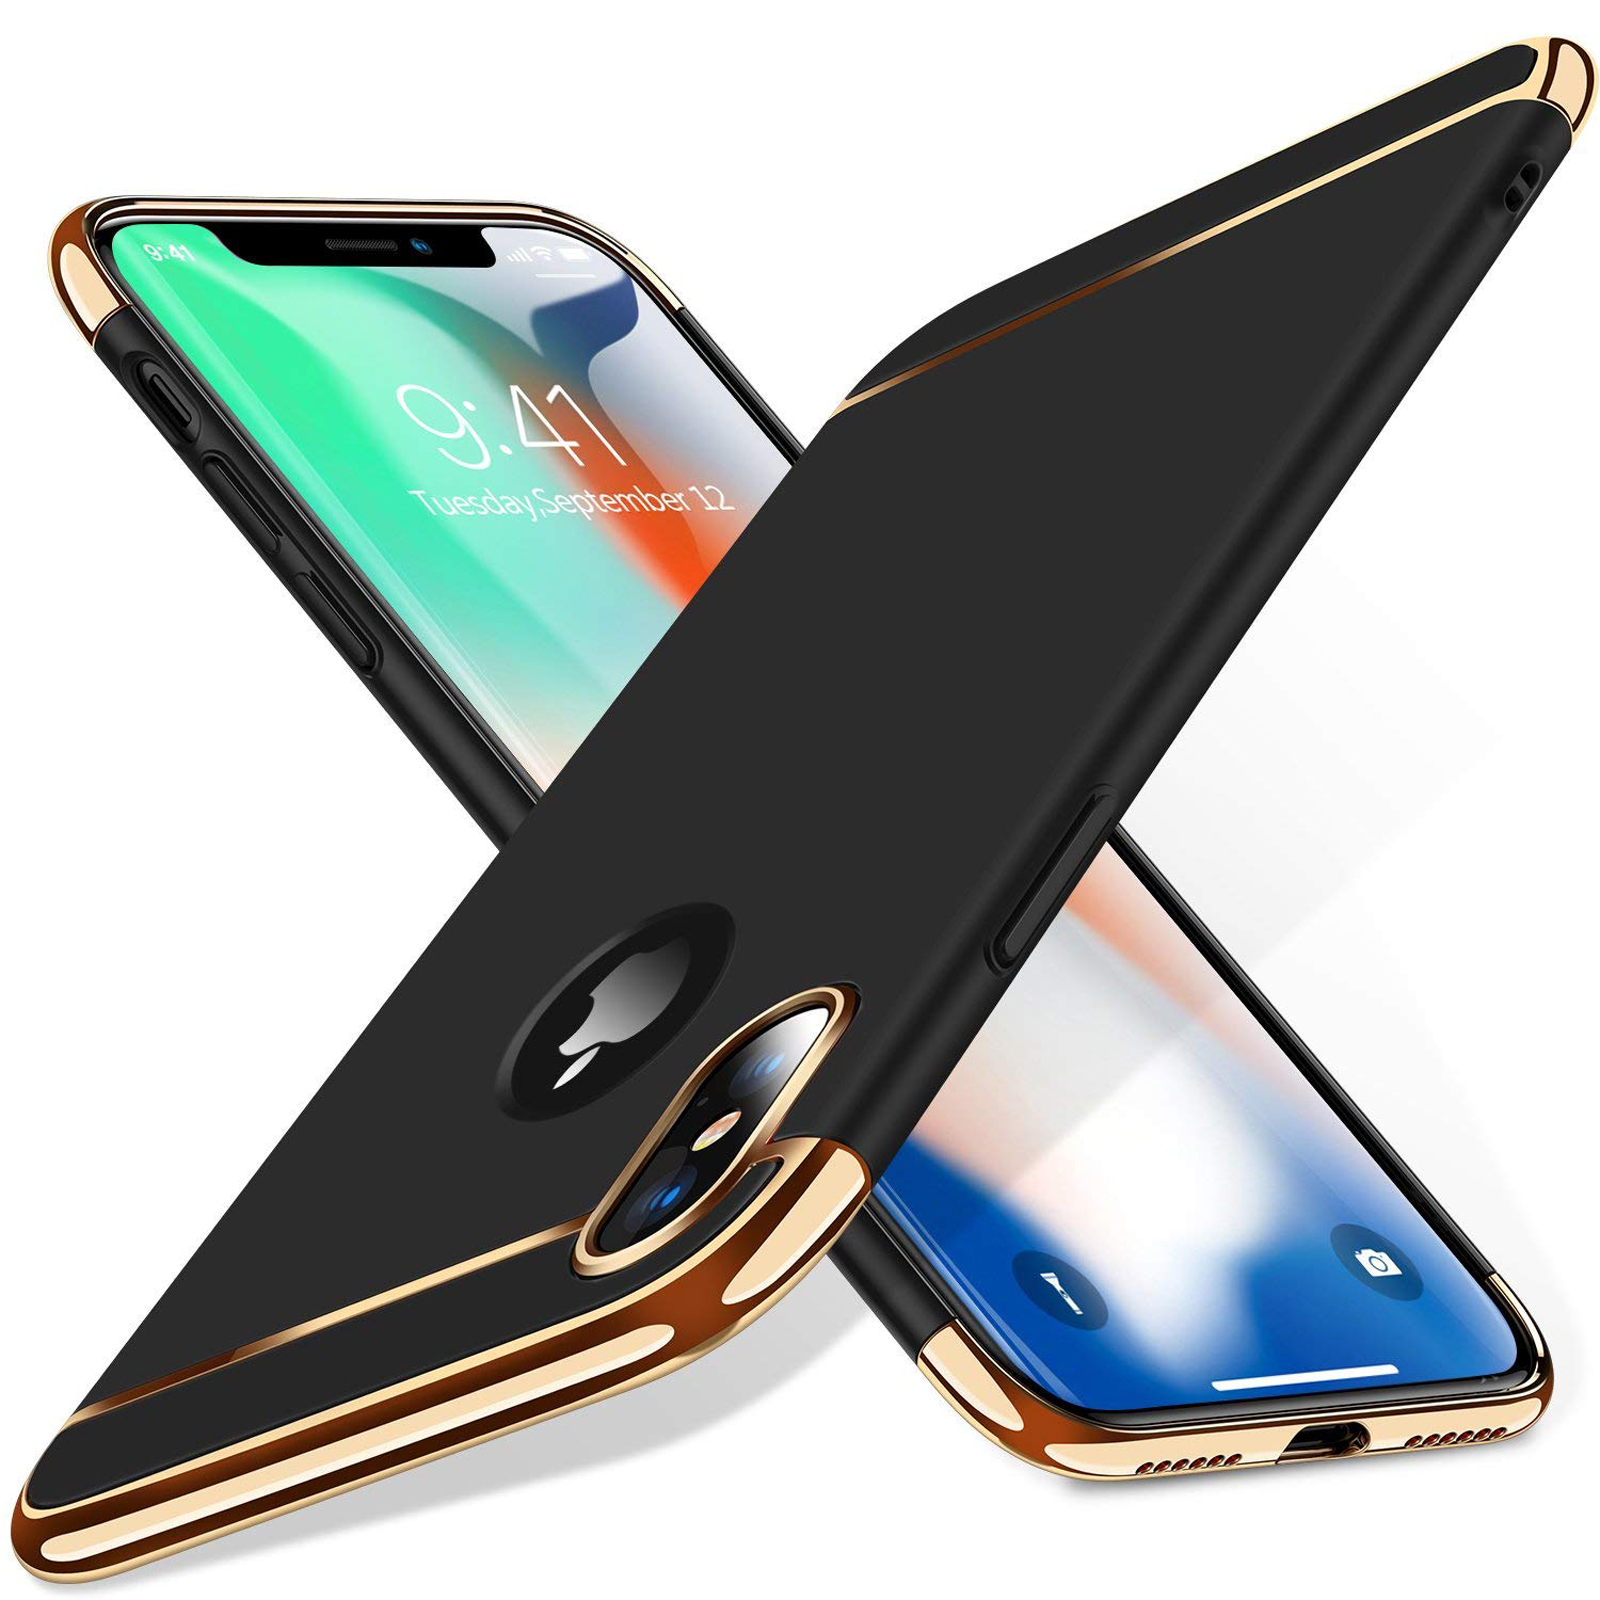 Luxury-Matte-Case-Tempered-Glass-Cover-For-Apple-iPhone-X-XS-XR-Max-10-8-7-6s-6 thumbnail 48